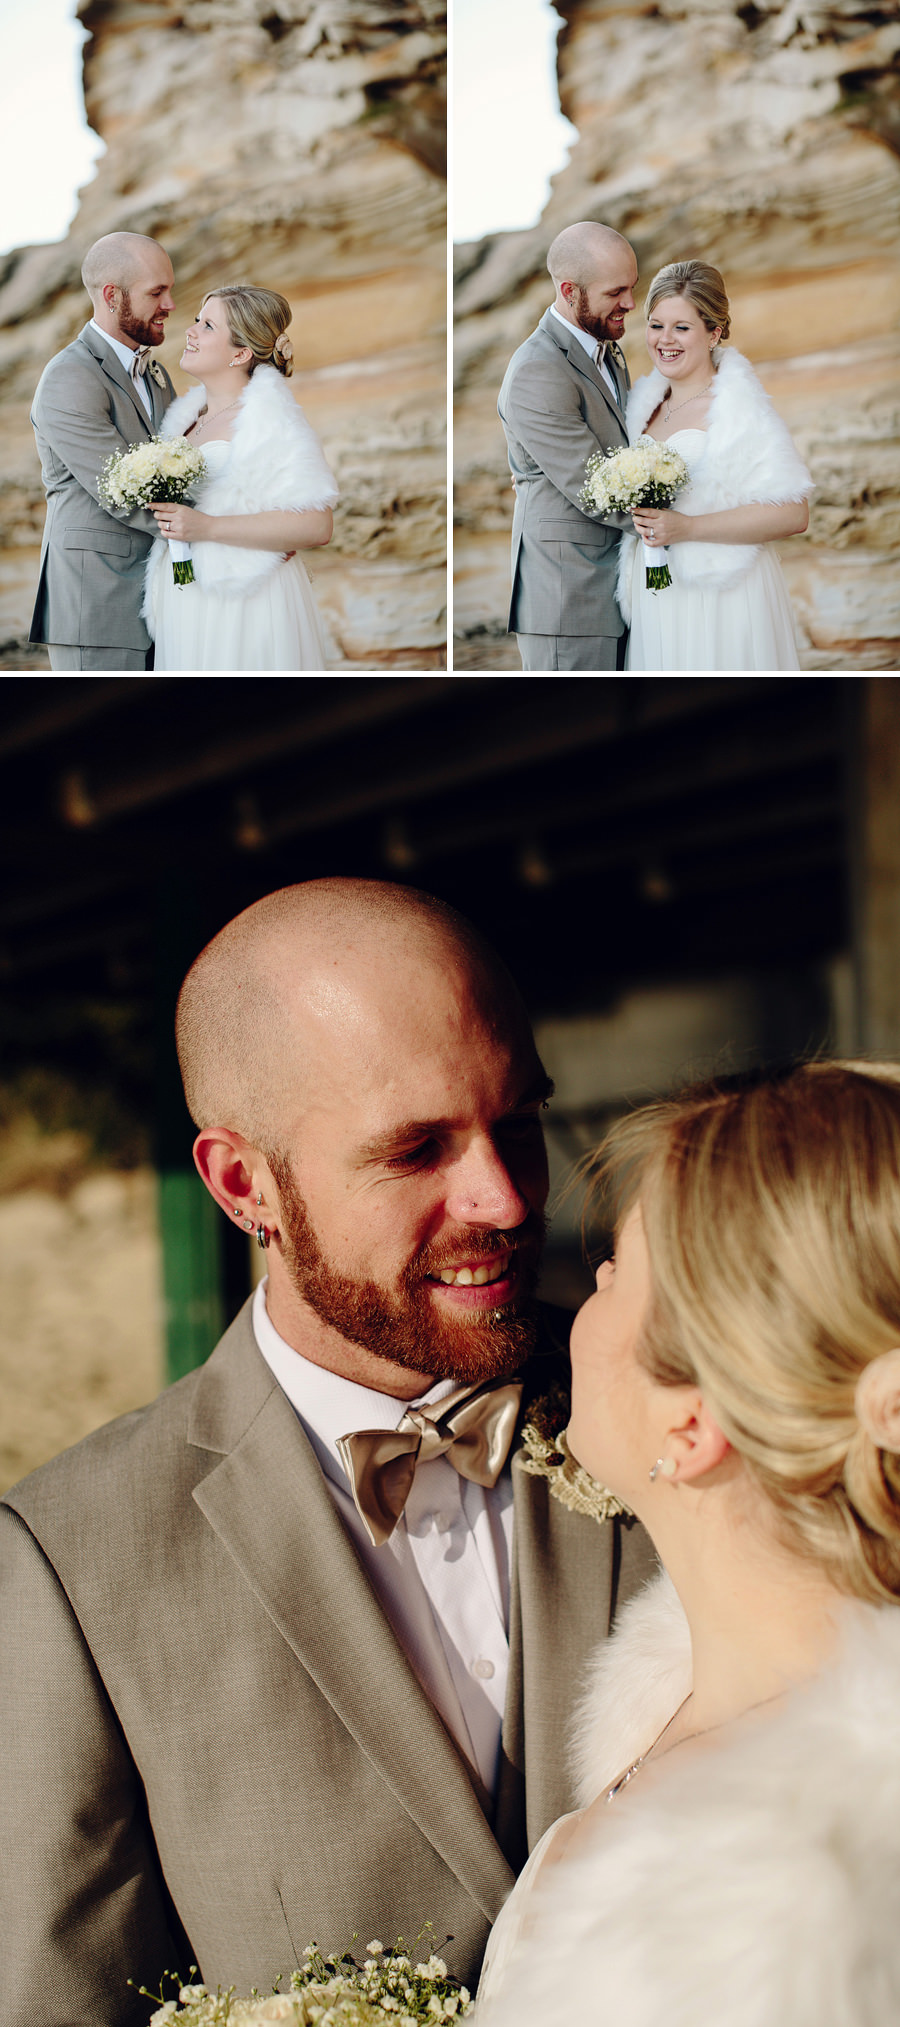 La Perouse Wedding Photographers: Bride & Groom Portraits